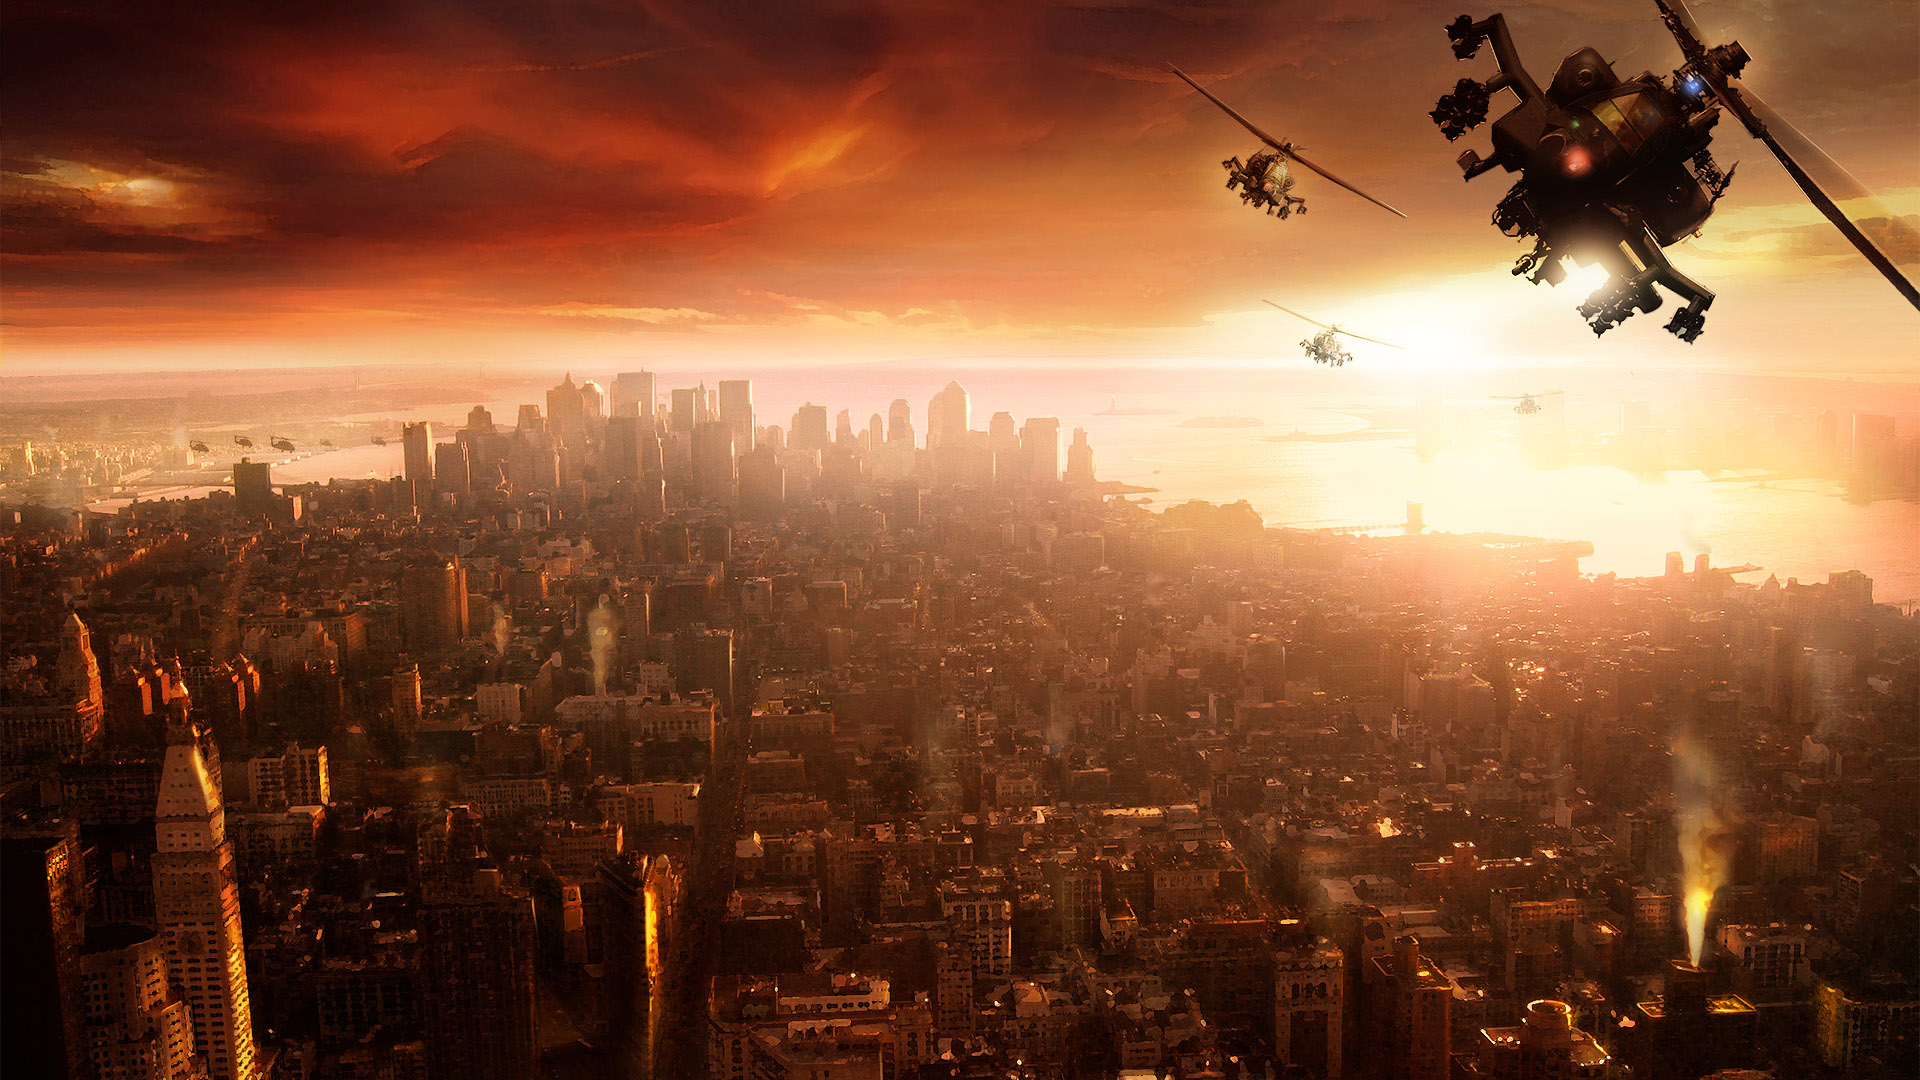 Hd wallpaper games - Fly Air Game Scene Wallpapers Hd Wallpapers